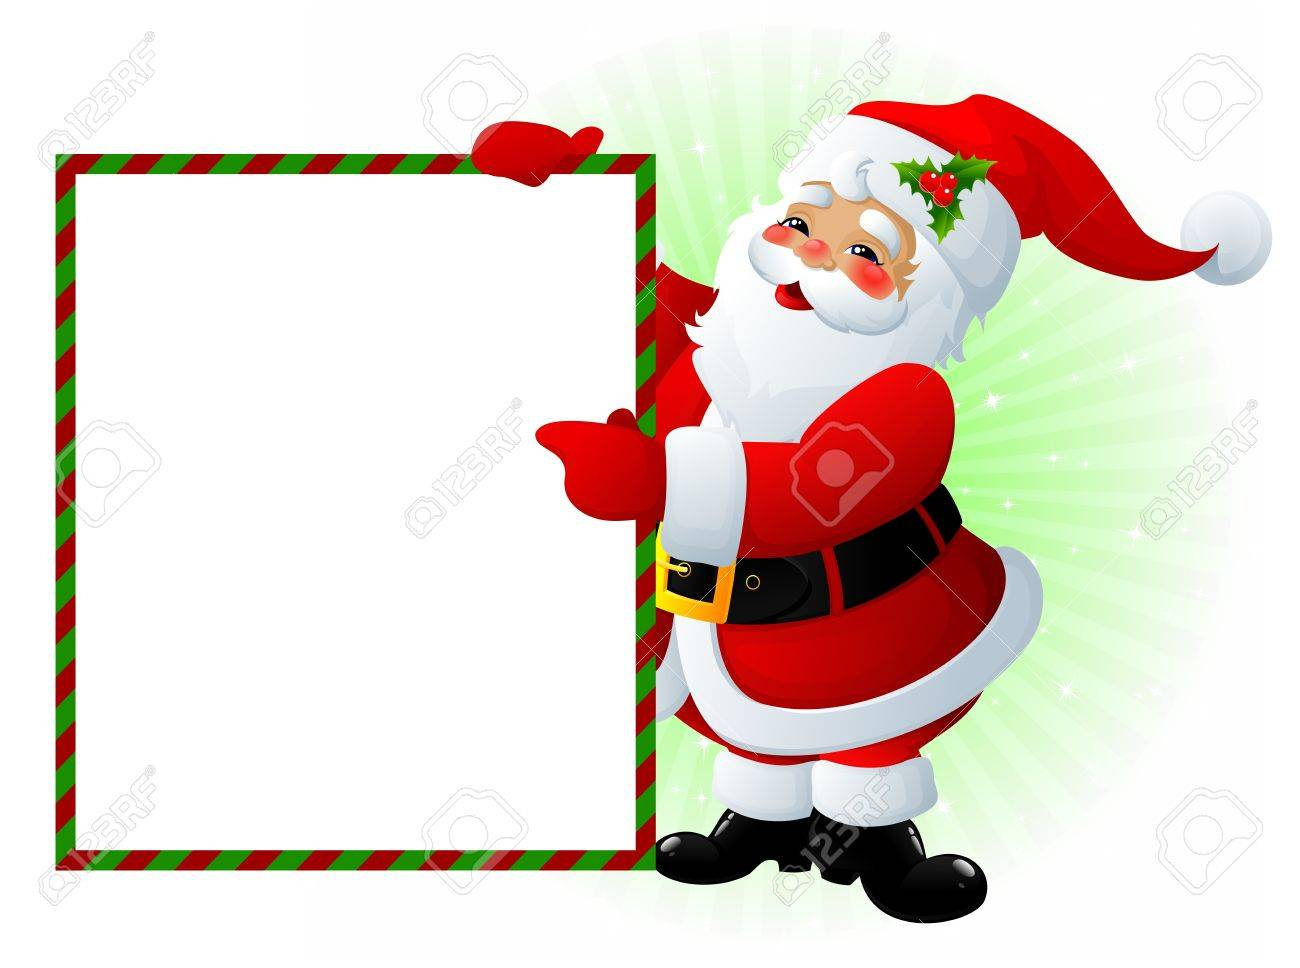 Santa Claus with message board Stock Photo - 3730304